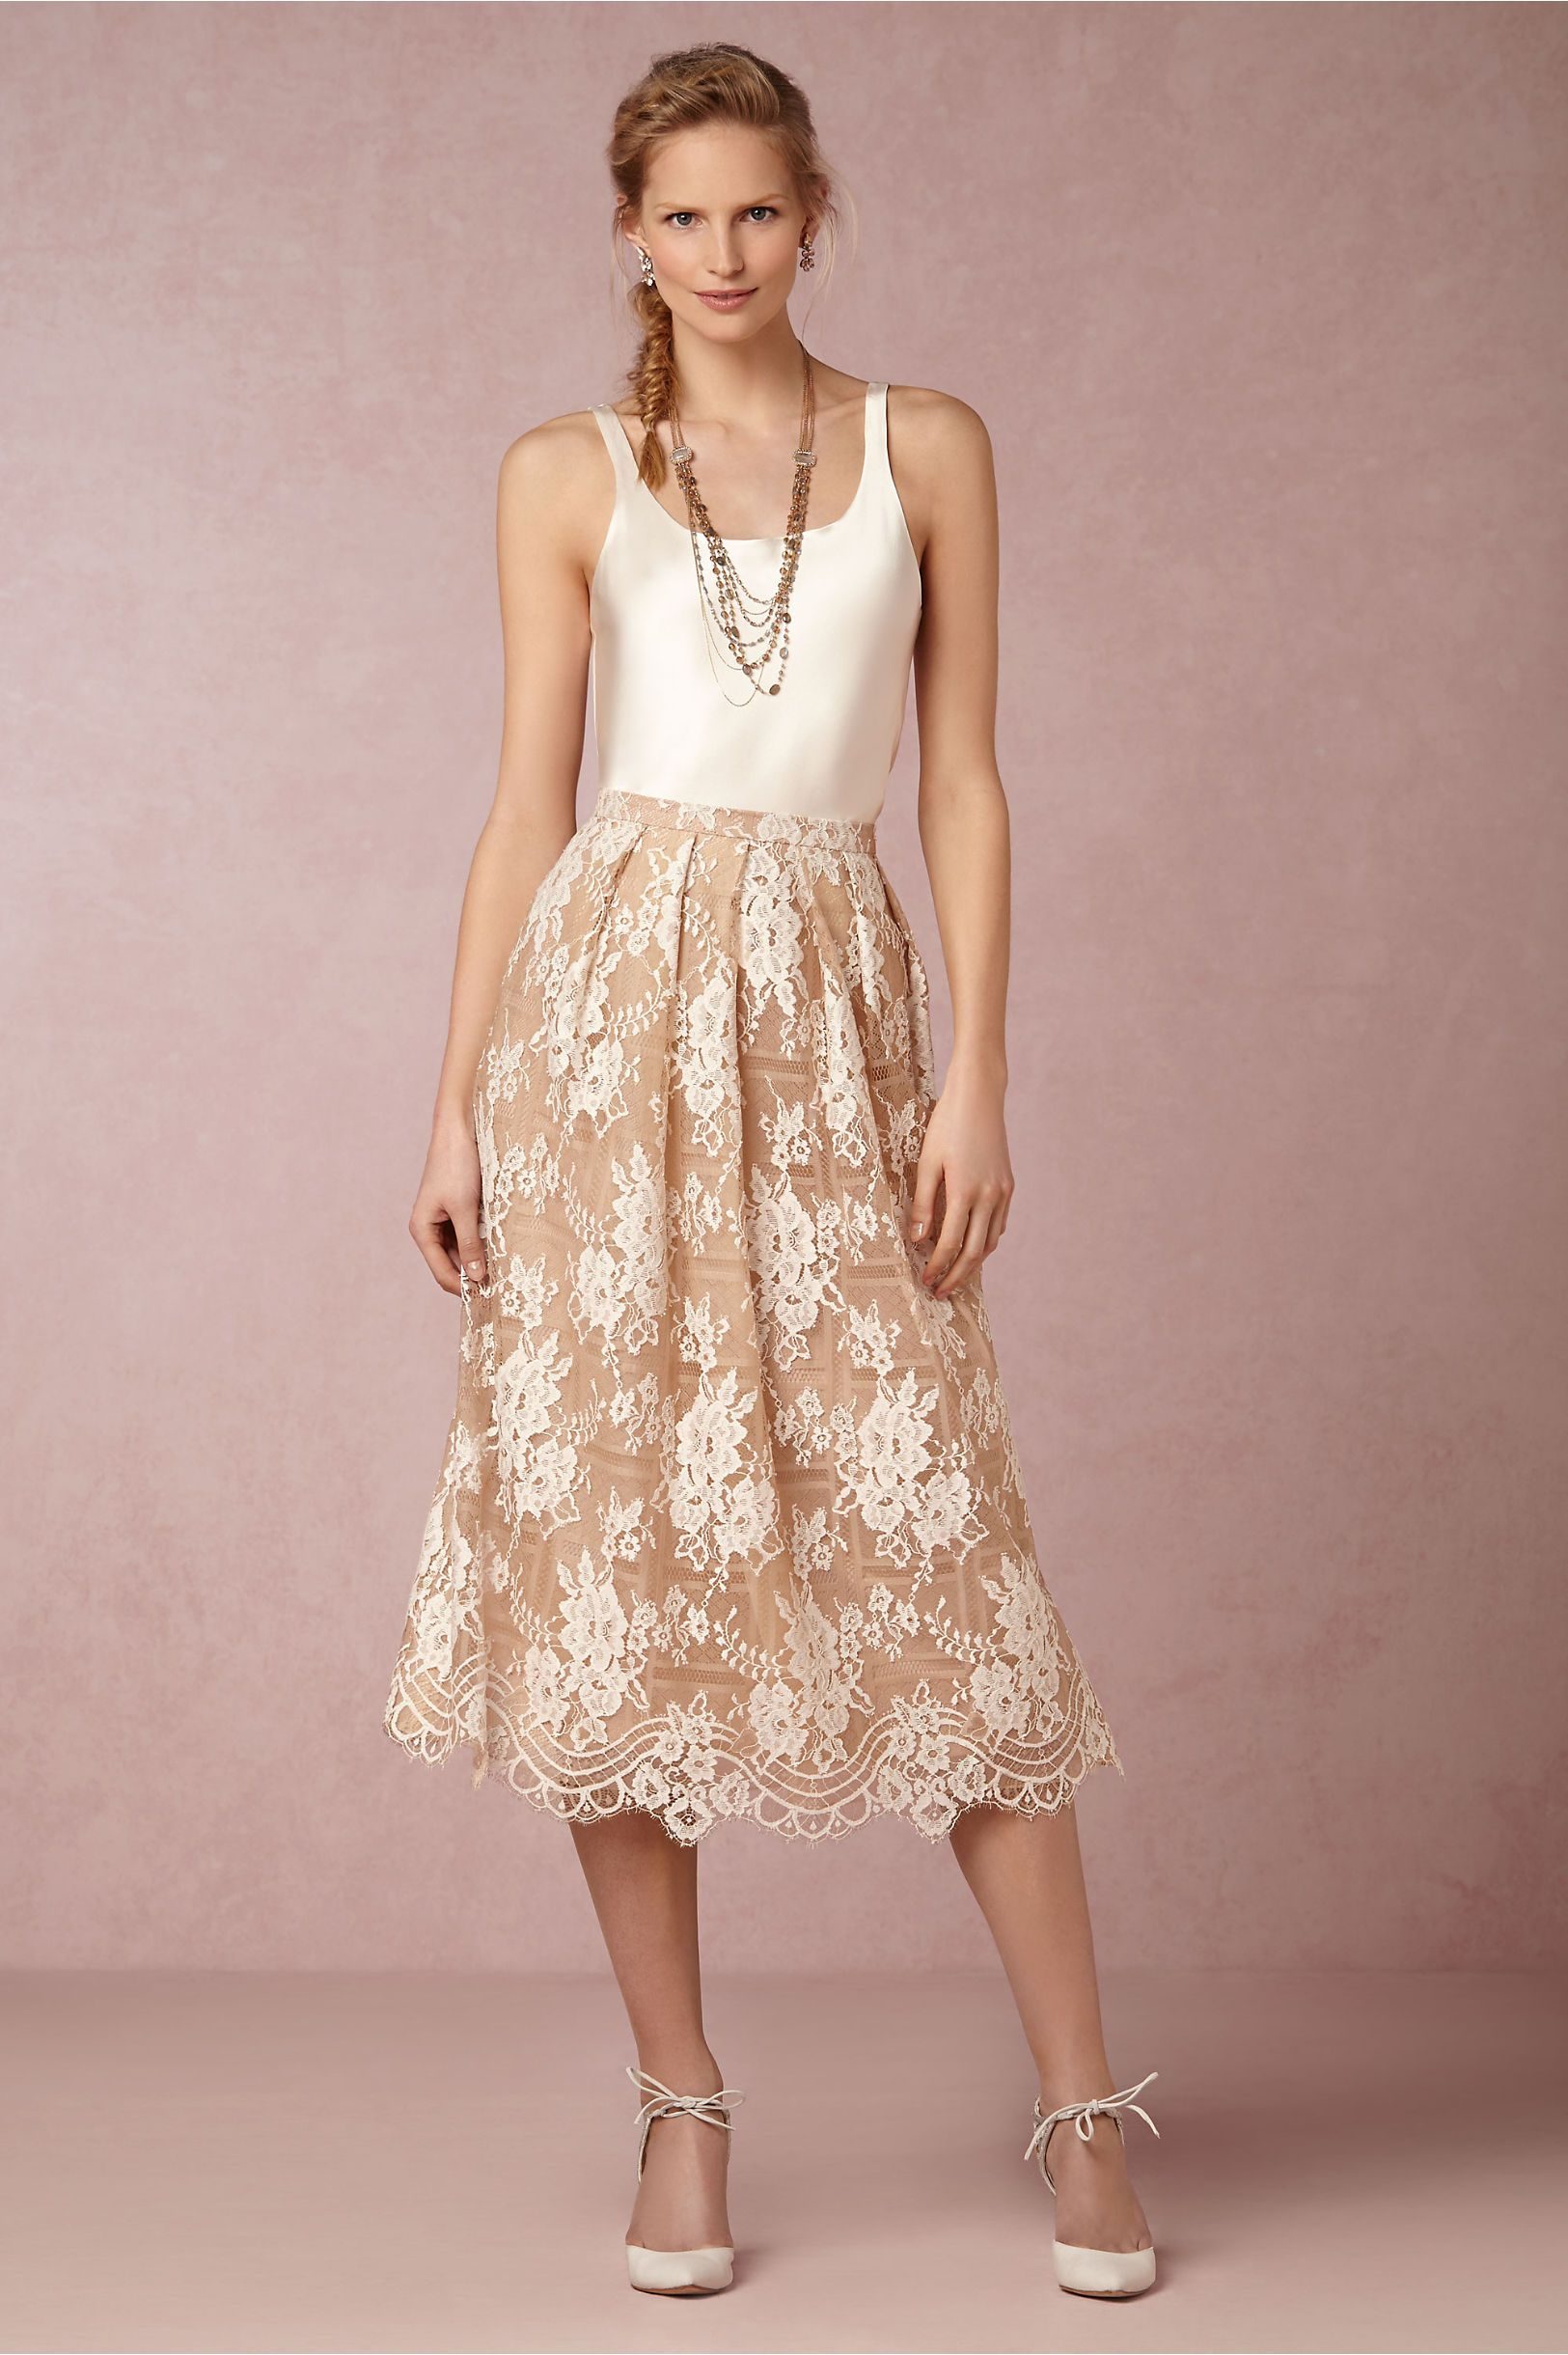 1ebc161fb46b Kennedy Skirt and Perpetuity Camisole in Bride Reception Dresses at BHLDN